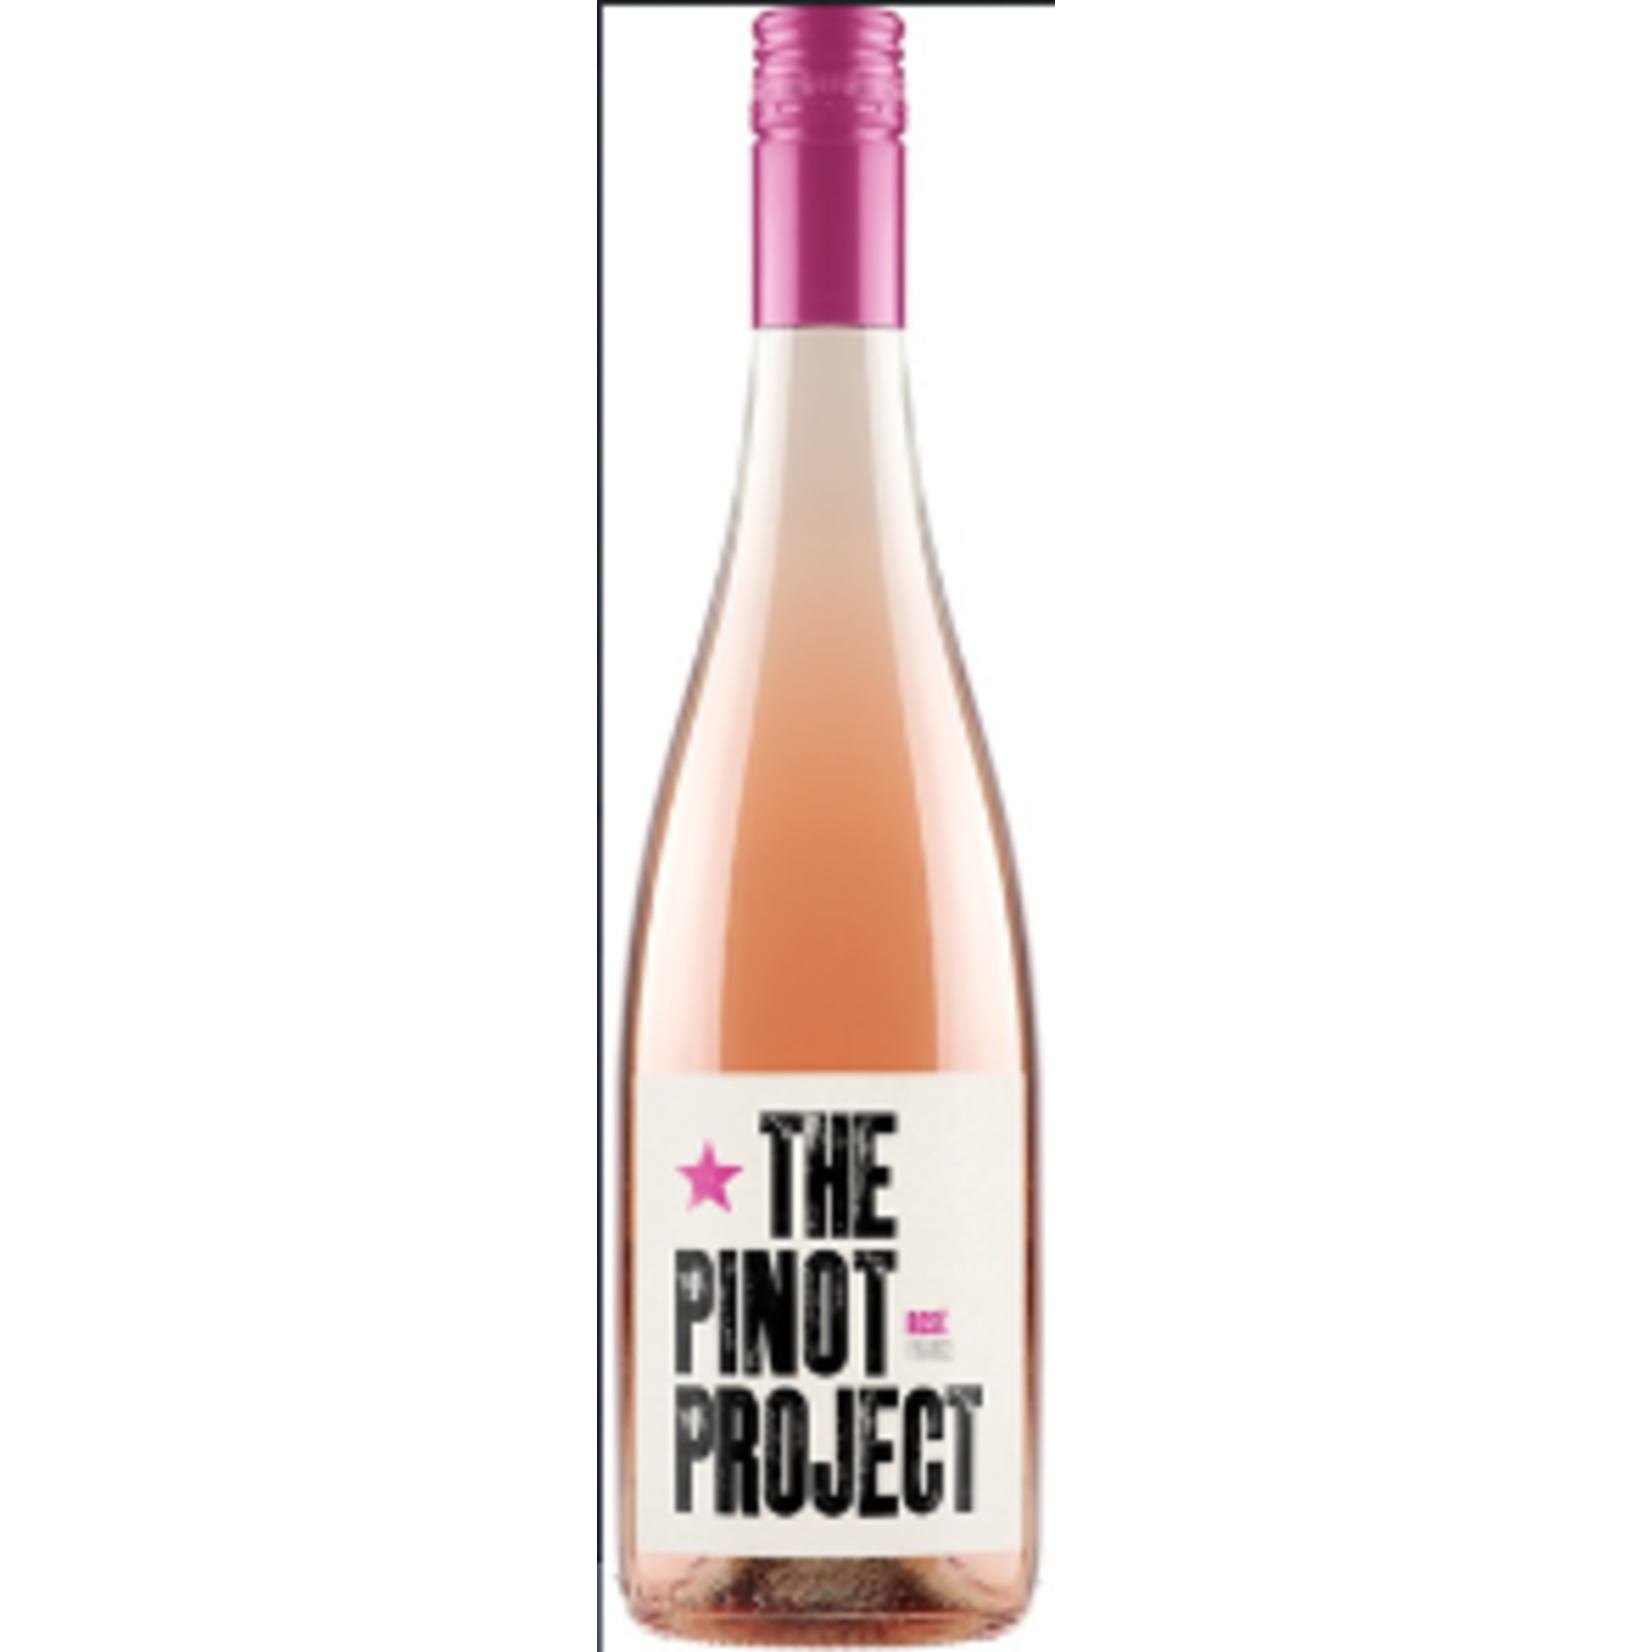 The Pinot Project The Pinot Project Rose 2020 South of France